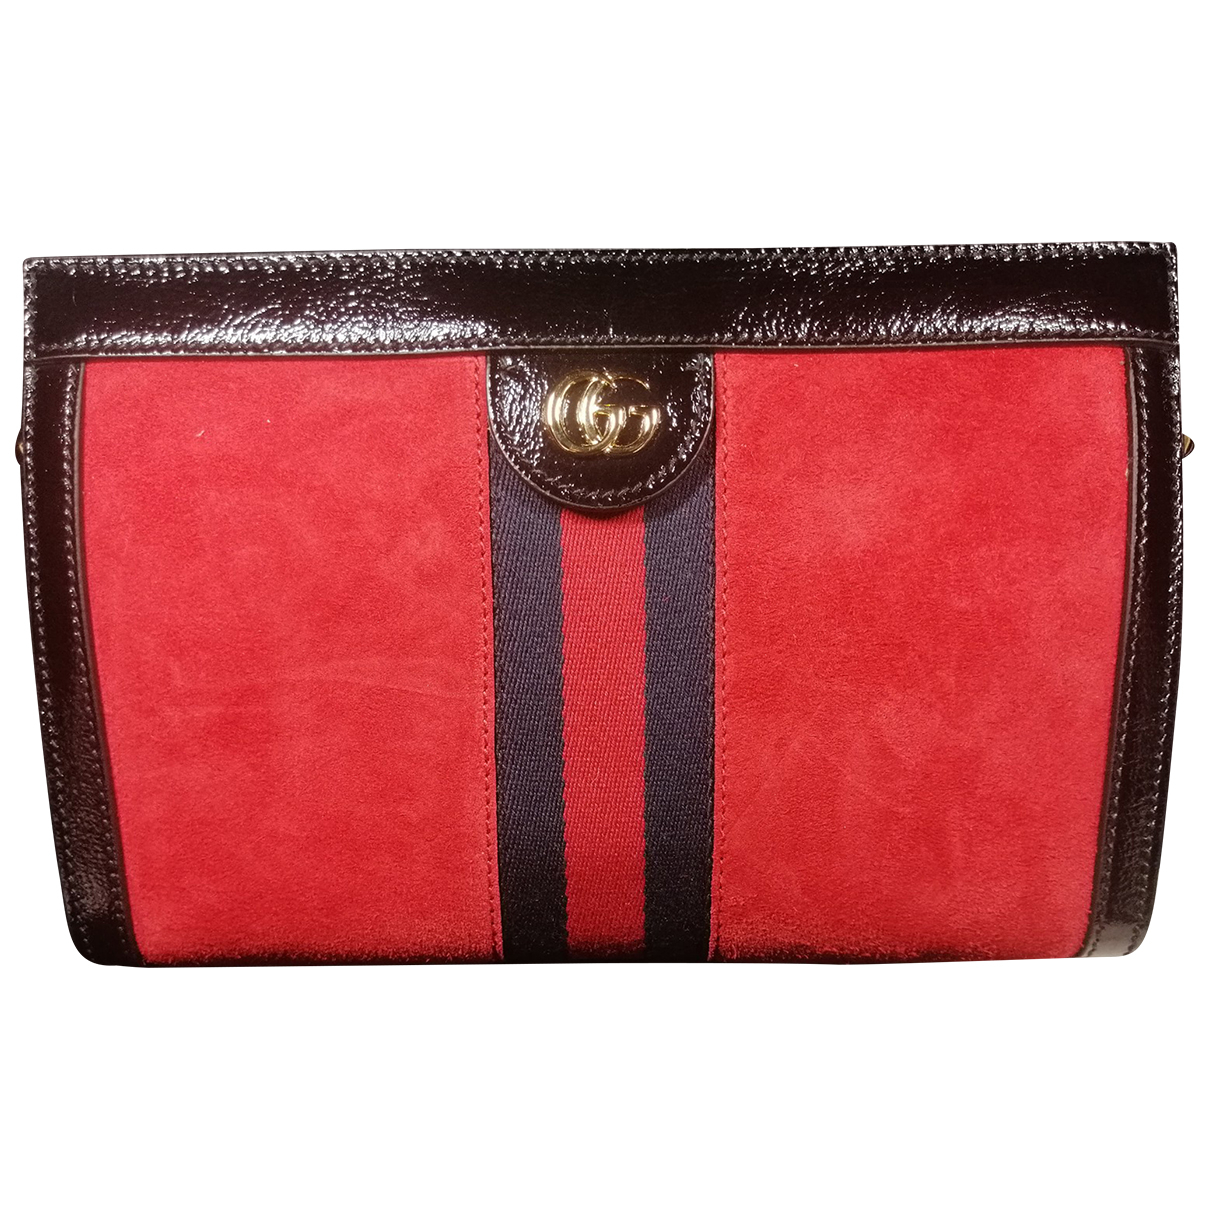 Gucci Ophidia Red Suede handbag for Women N